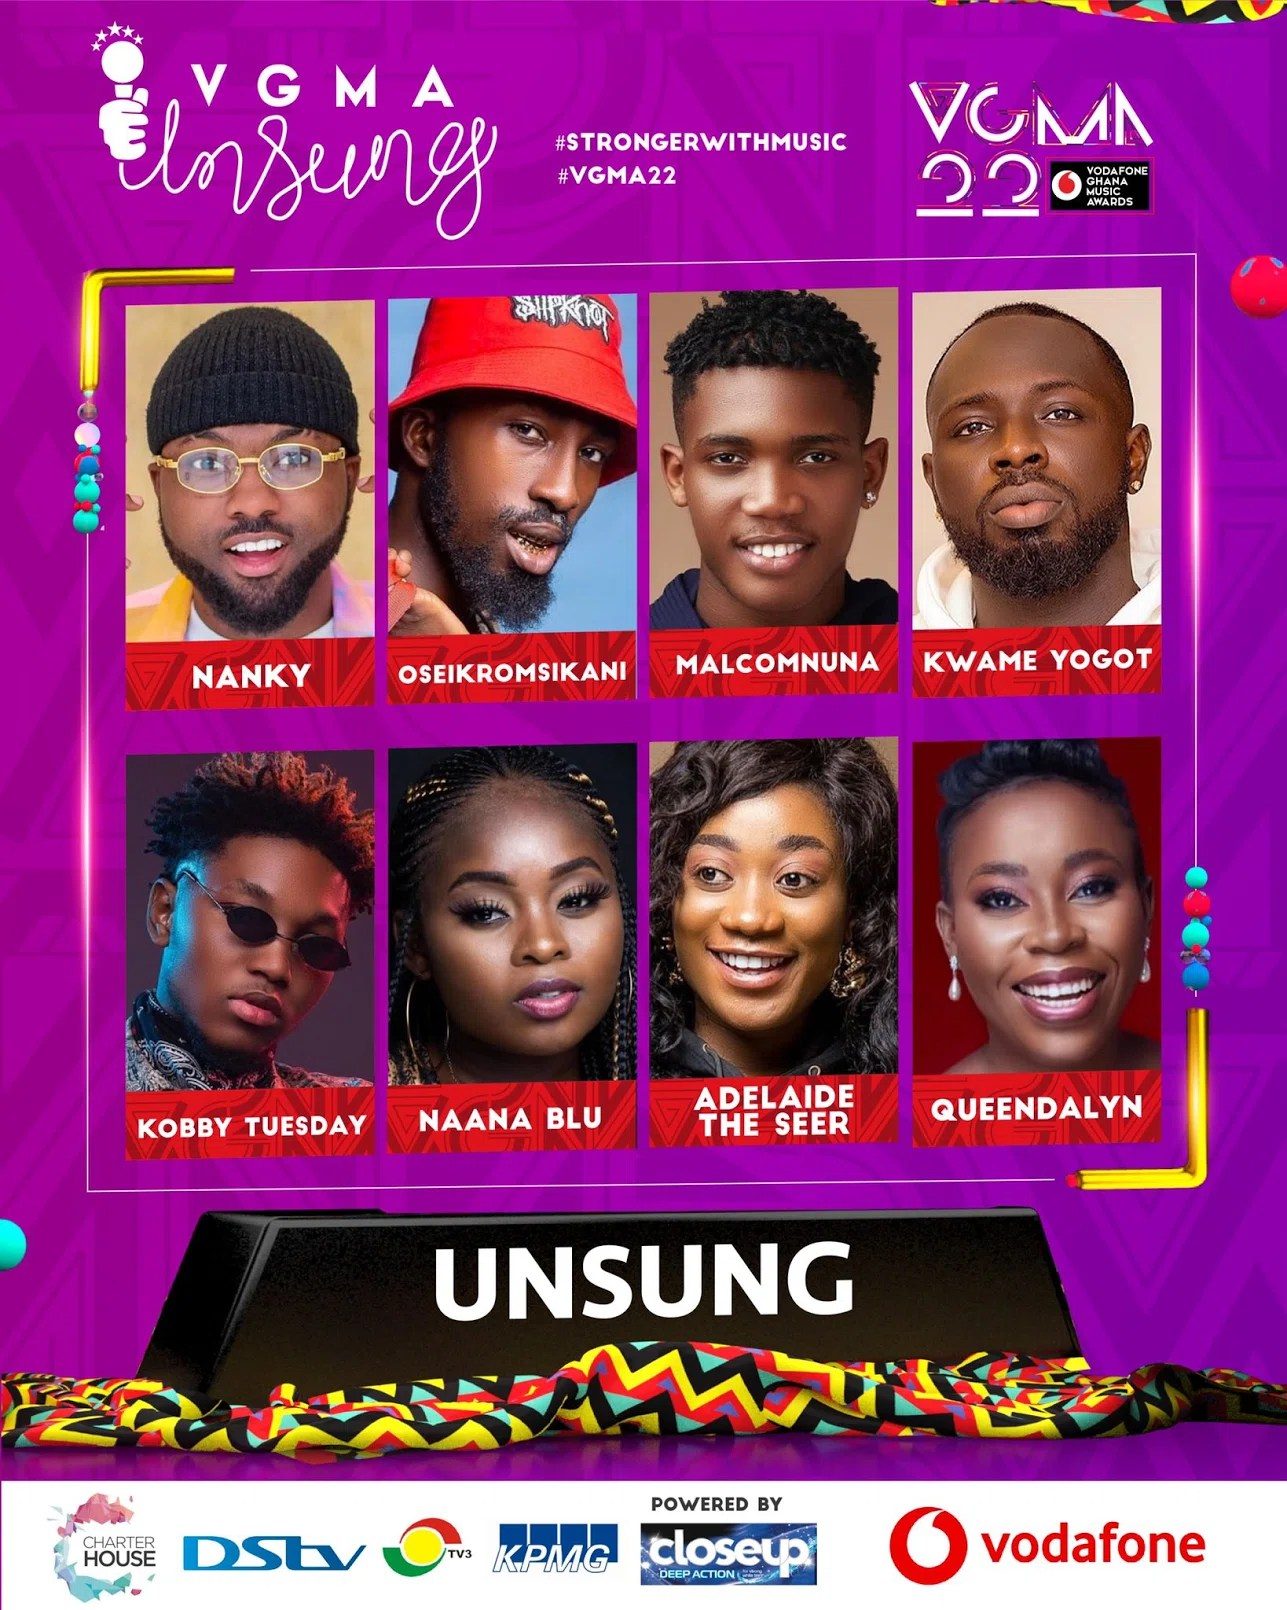 20210403 130236 Chartered House Has Released The Nominees List Of The 22nd Edition Of VGMA Awards